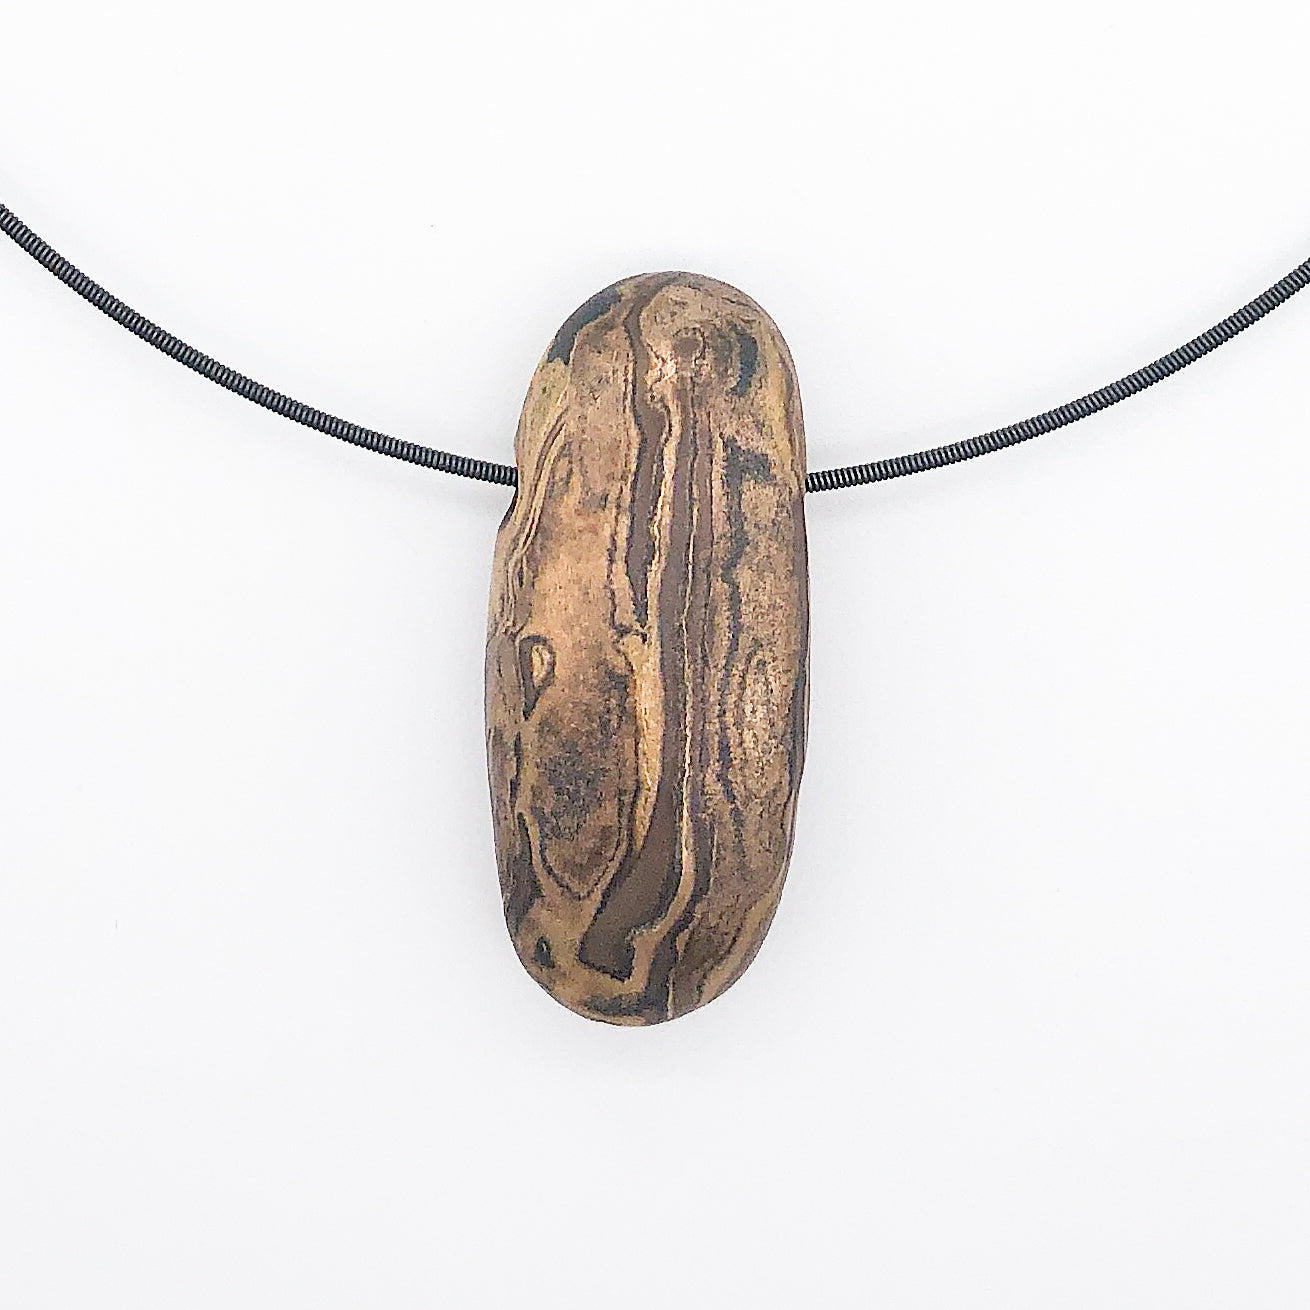 Touchstone - Makume Gane Pebble Necklace -sold